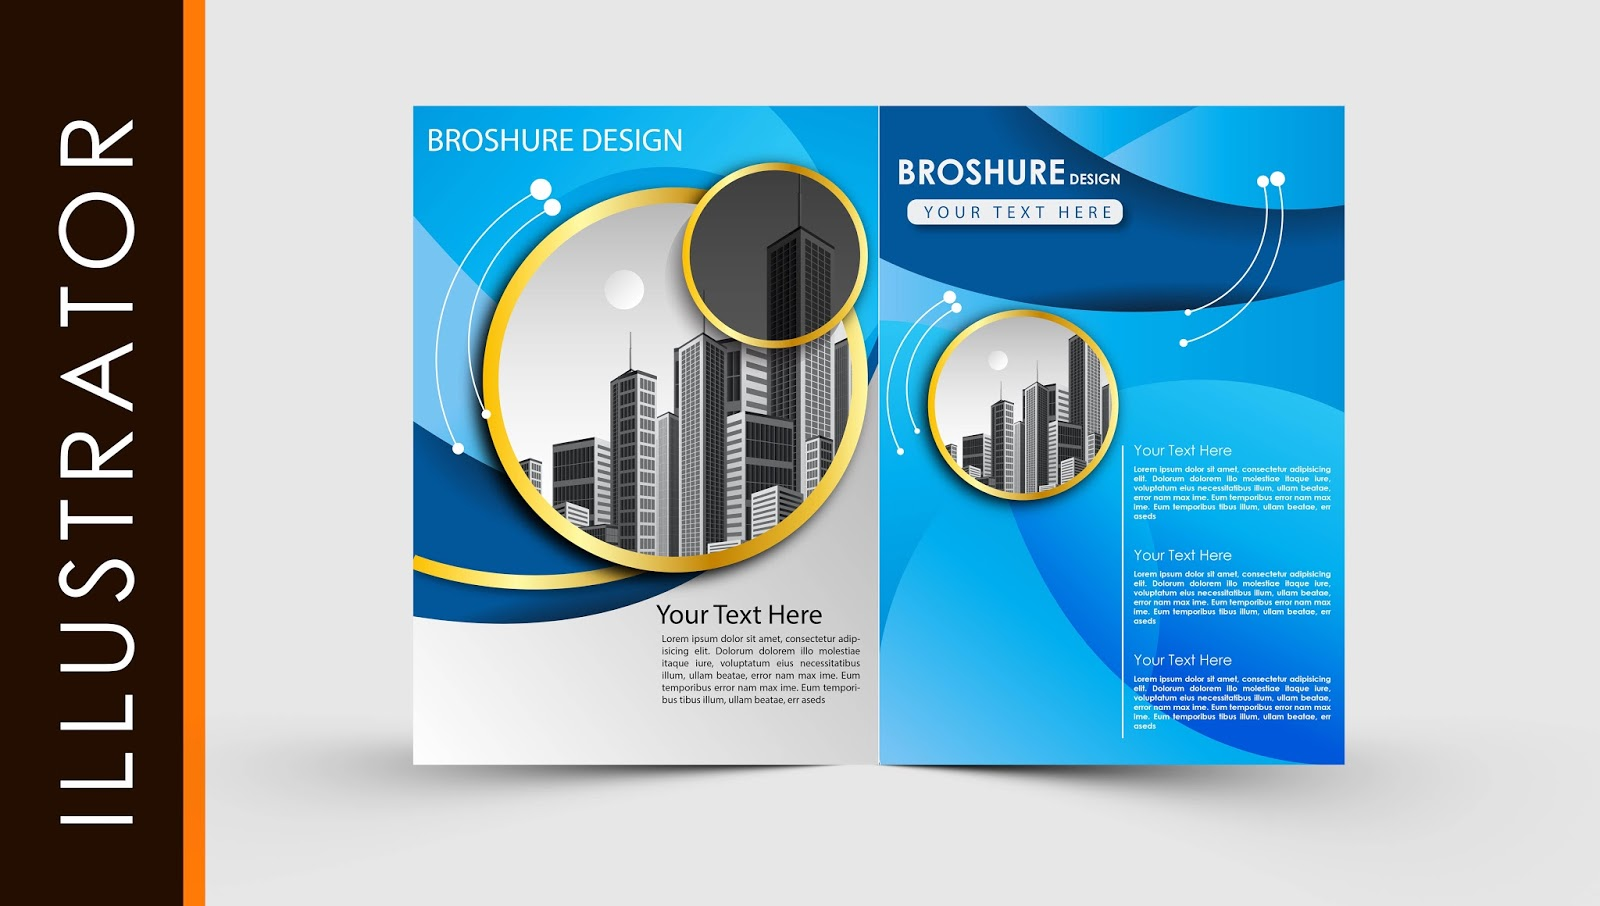 005 Magnificent Free Download Flyer Template Design  Templates Blank Leaflet Word PsdFull